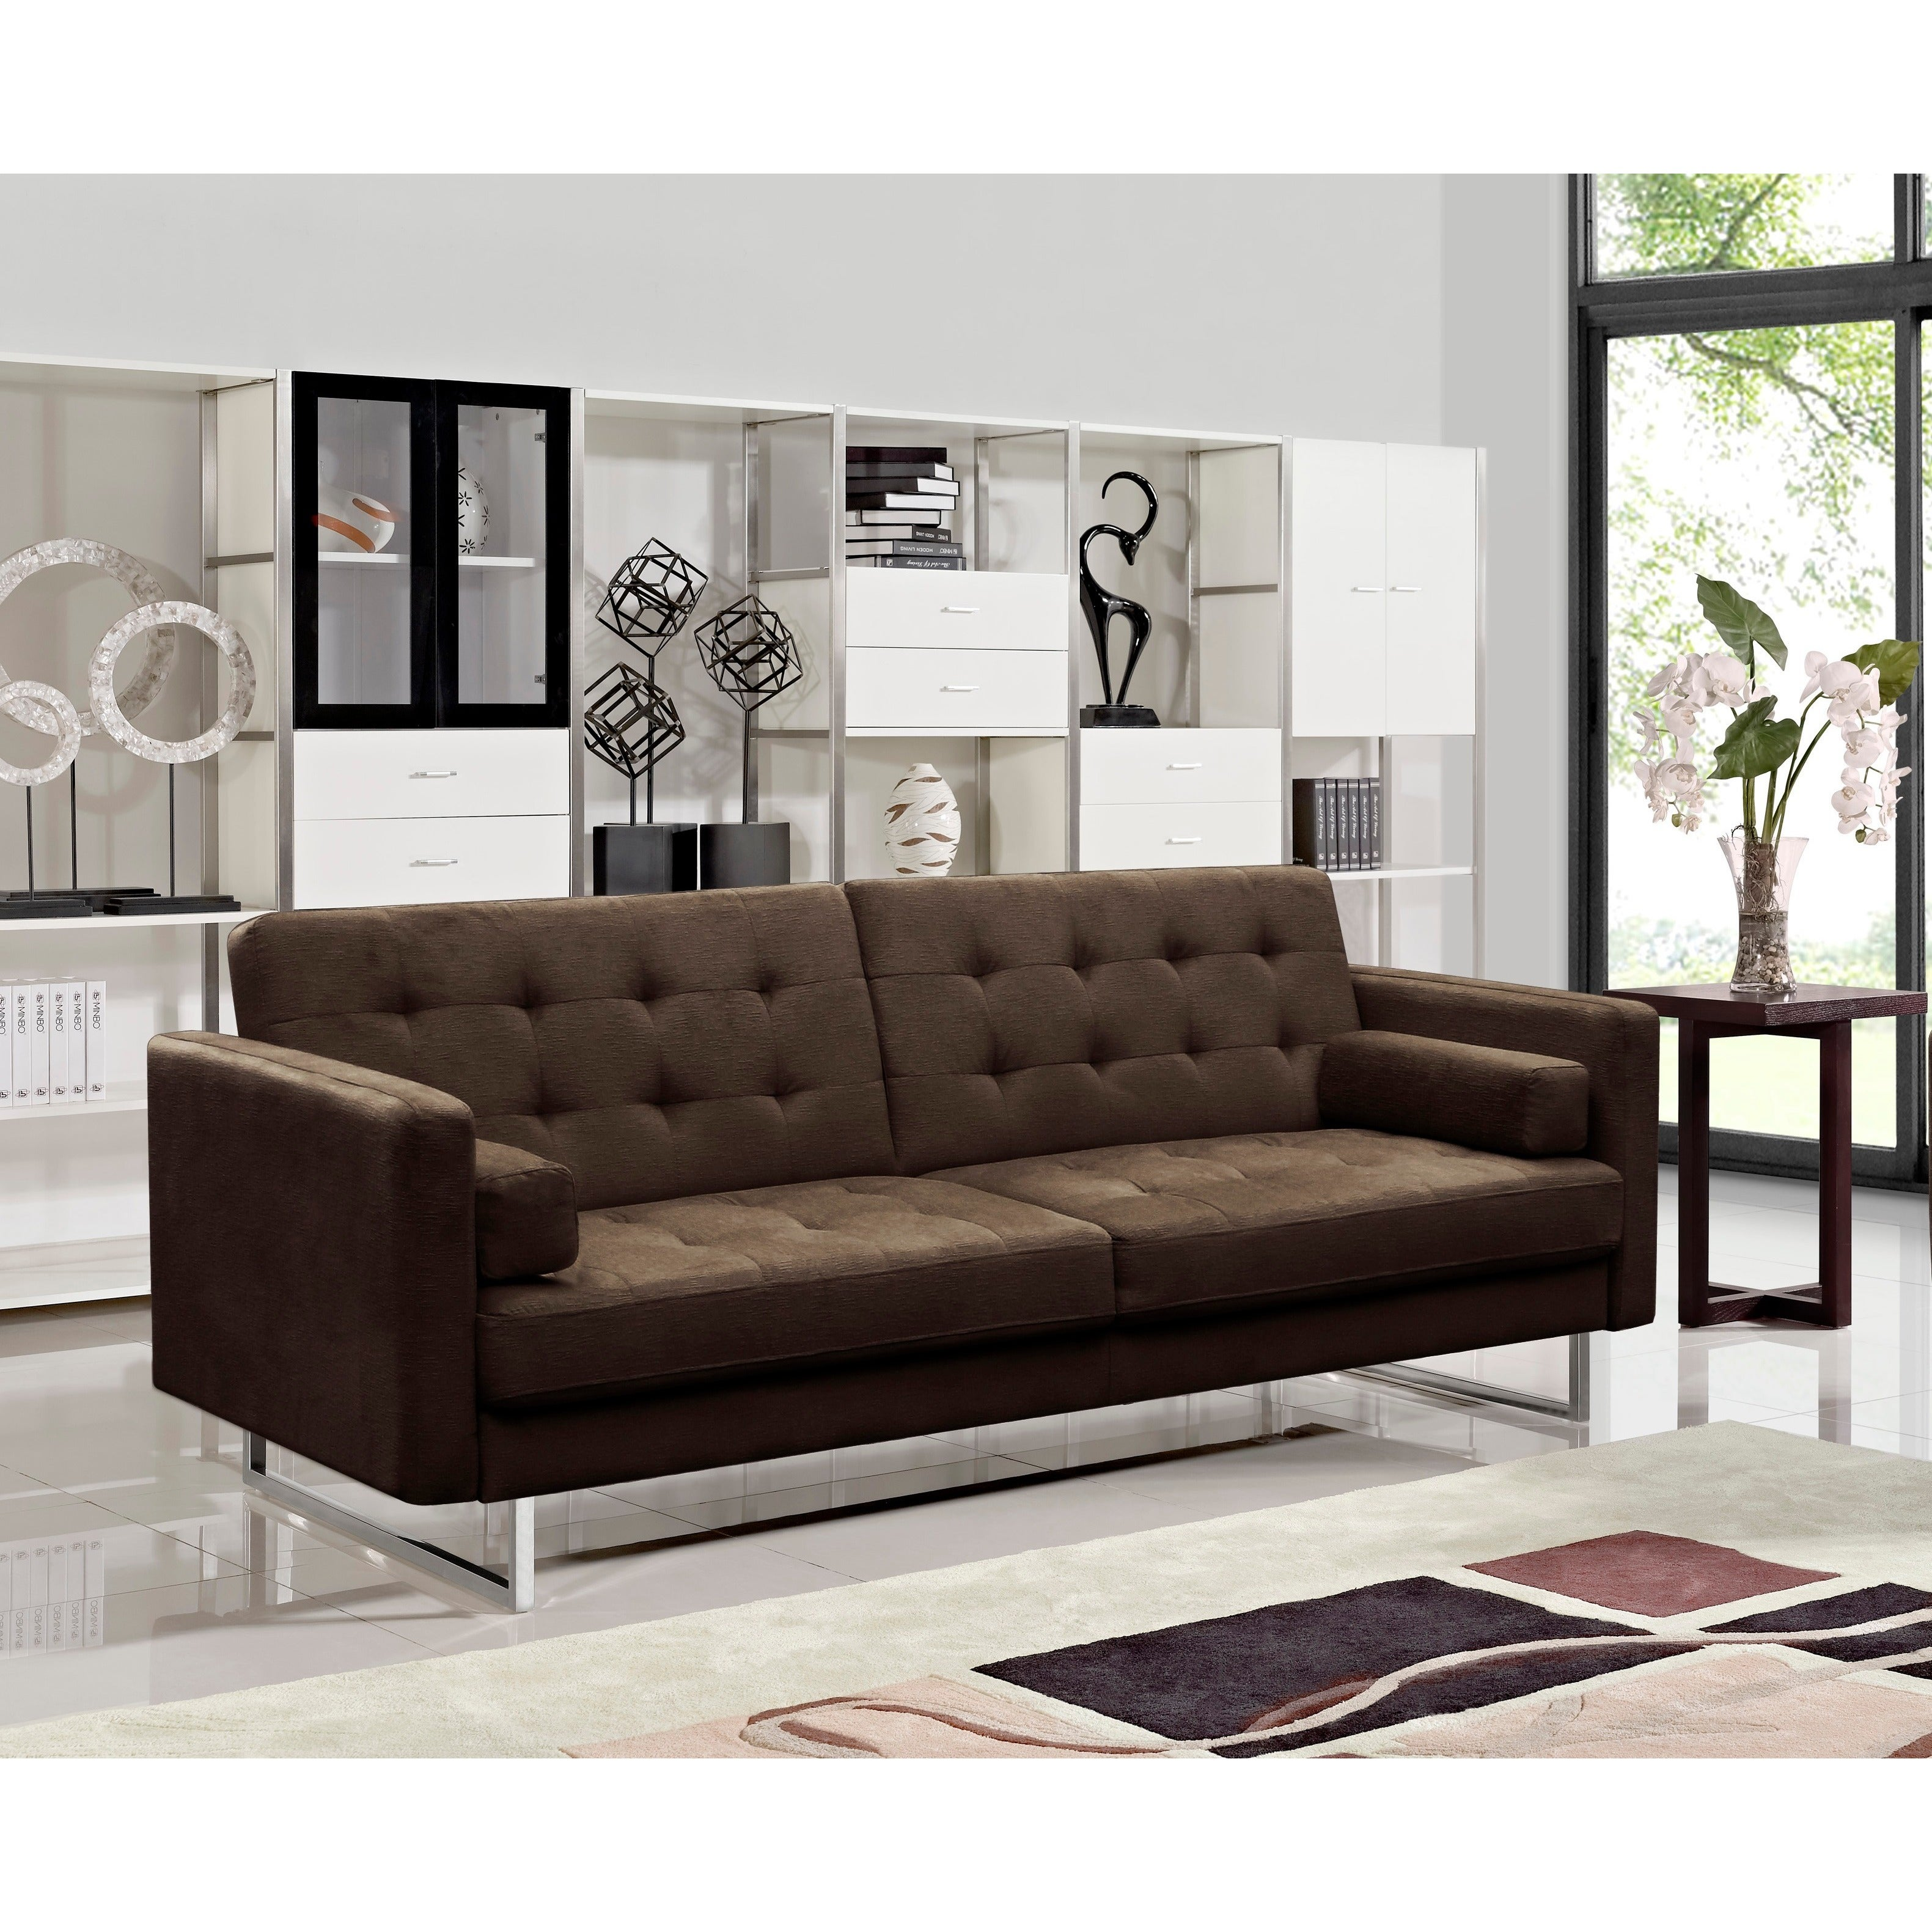 Claire Fabric Modern Sofa Bed On Free Shipping Today 9912921